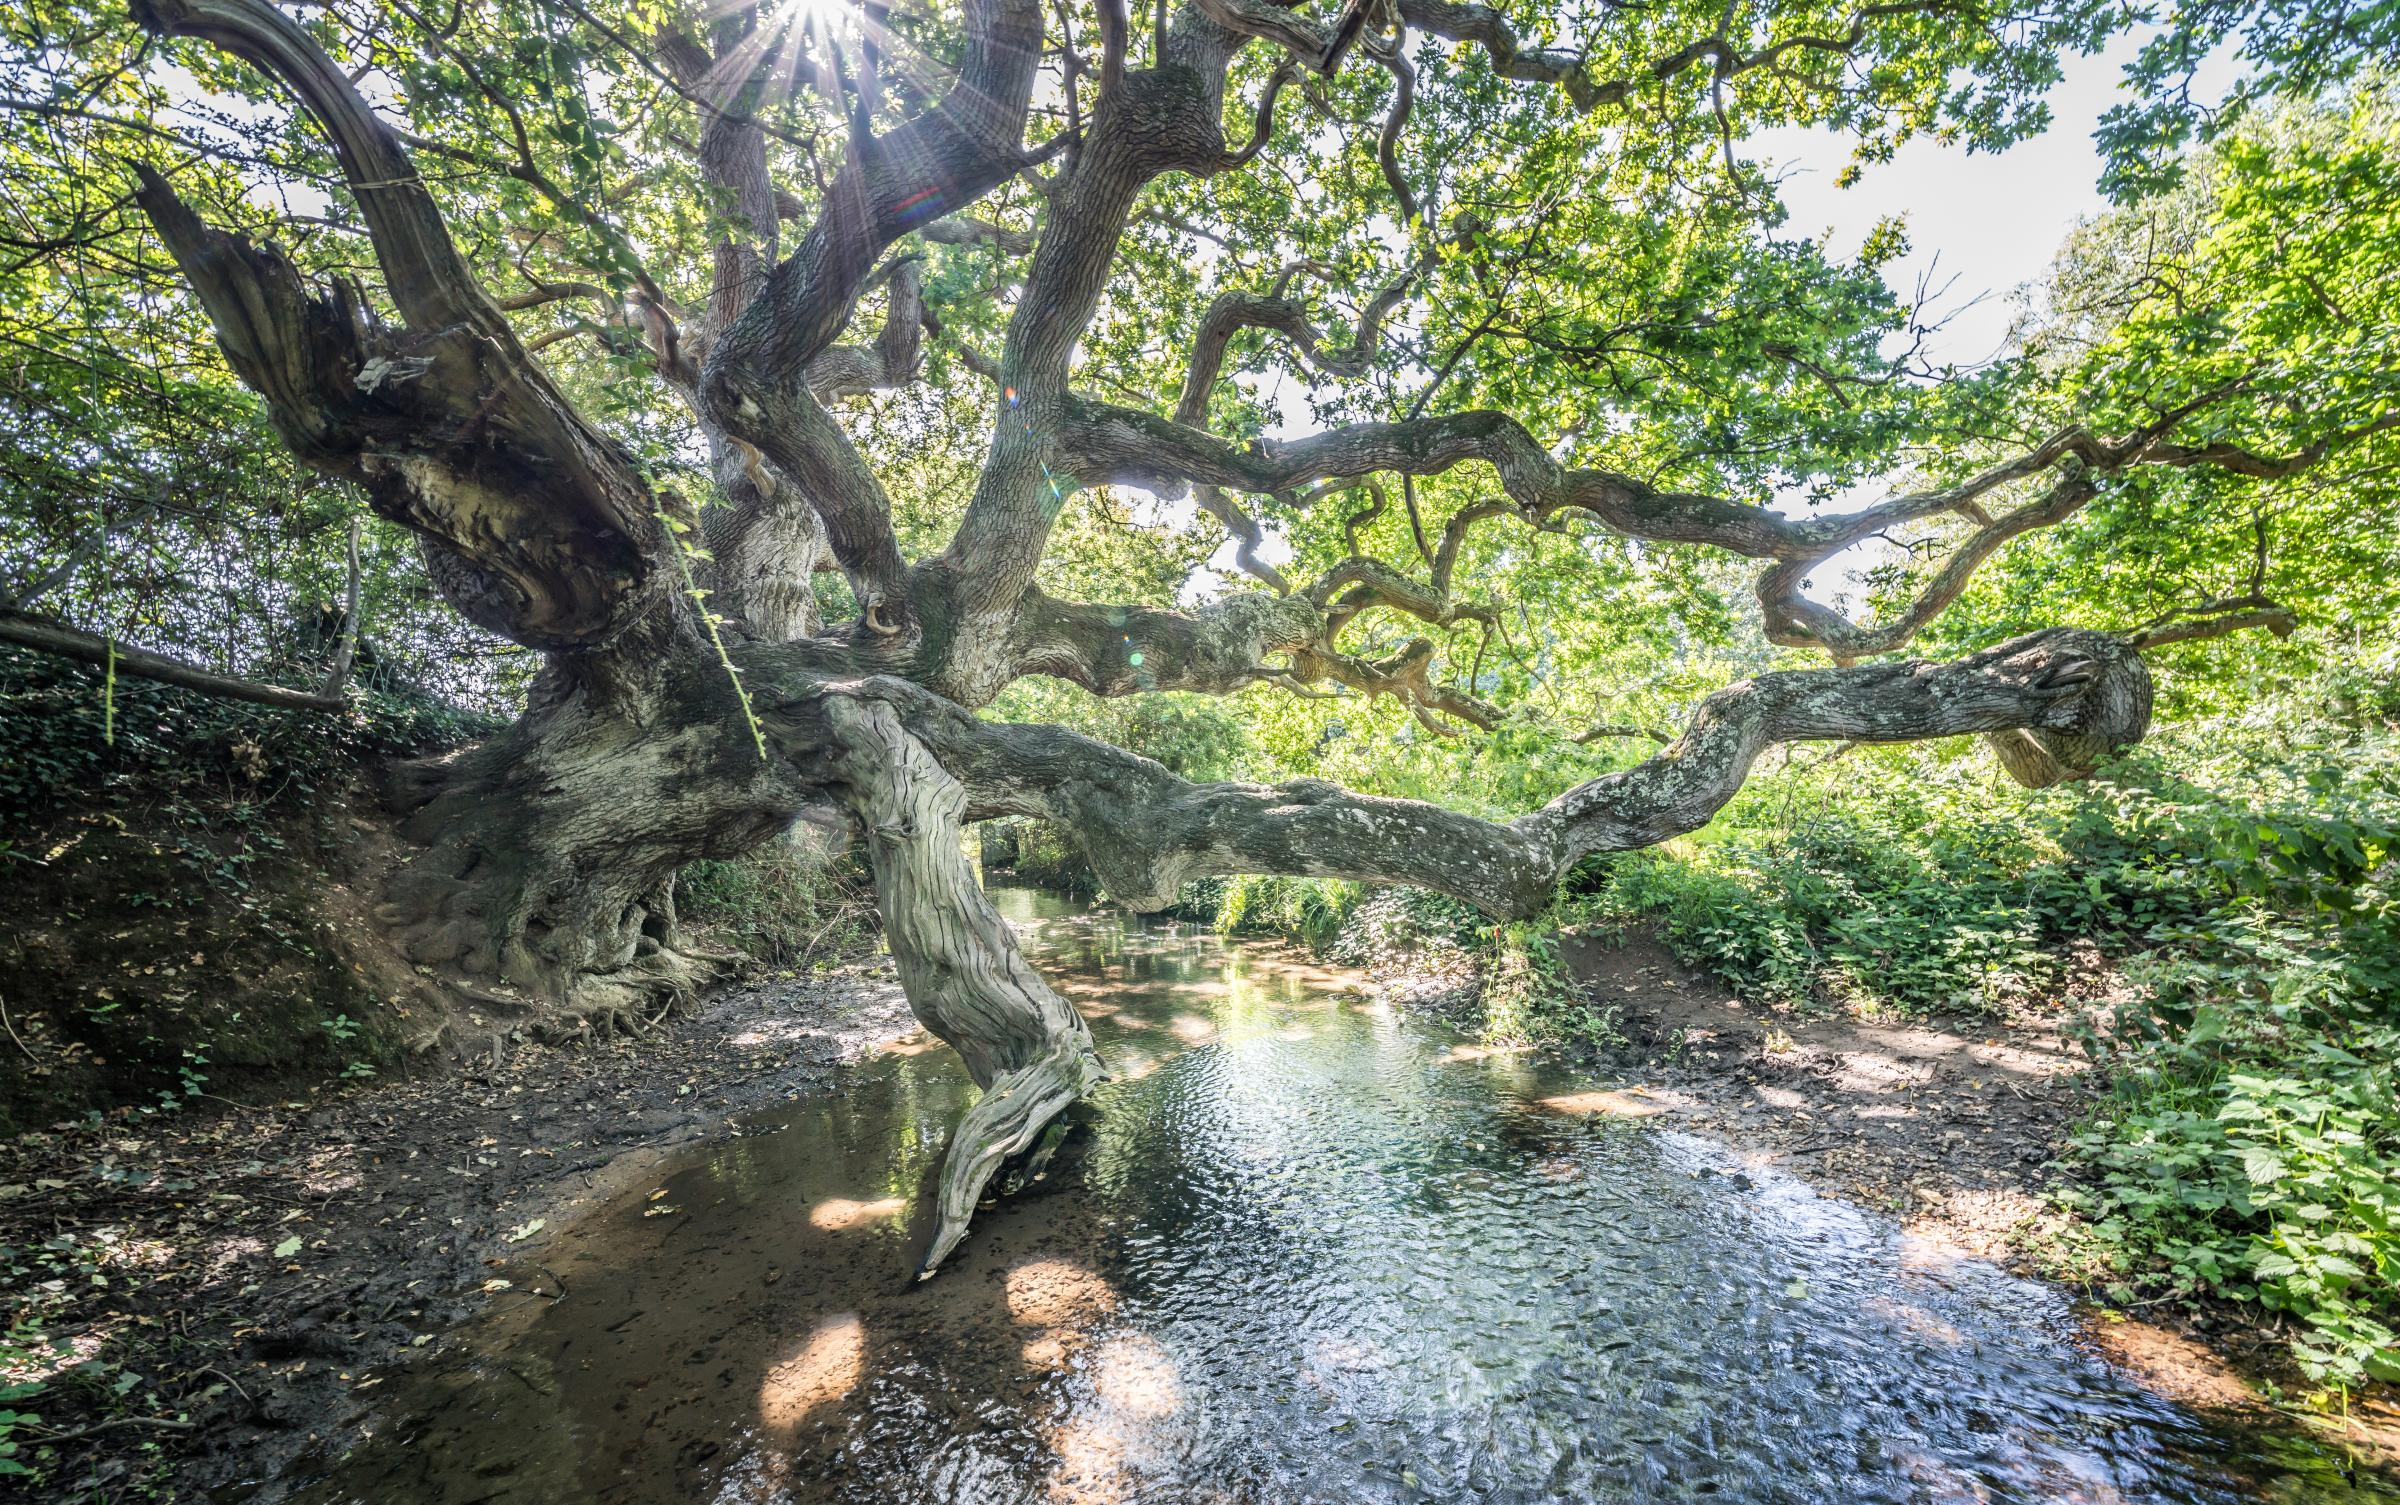 Isle of Wight's dragon tree comes third in Woodland Trust's tree of the year competition